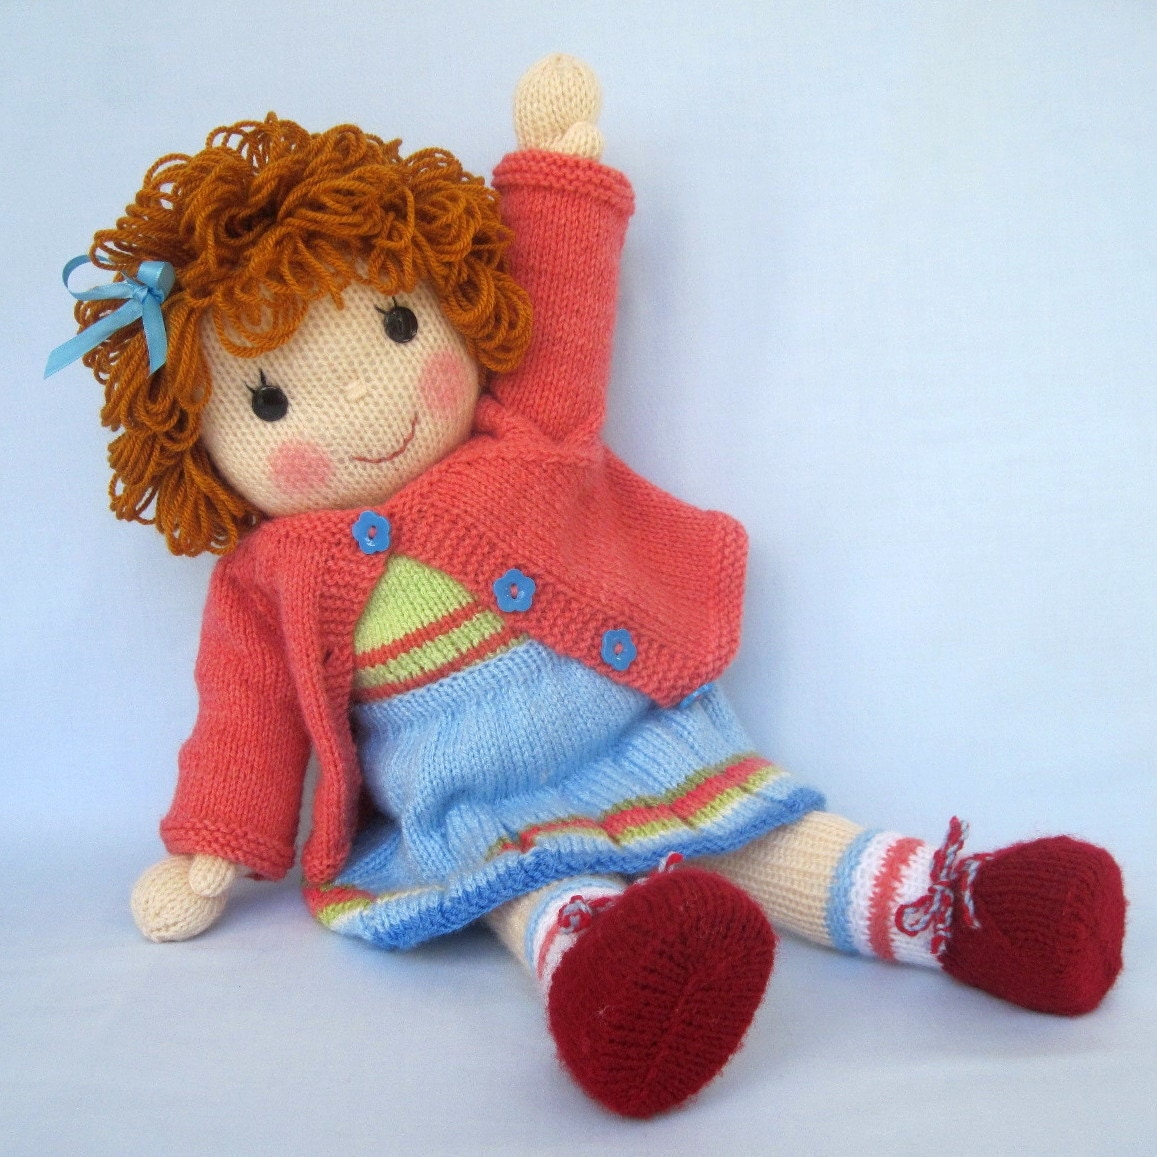 Belinda jane and merrily ann raggedy ann doll knitting belinda jane and merrily ann raggedy ann doll knitting patterns instant download bankloansurffo Images